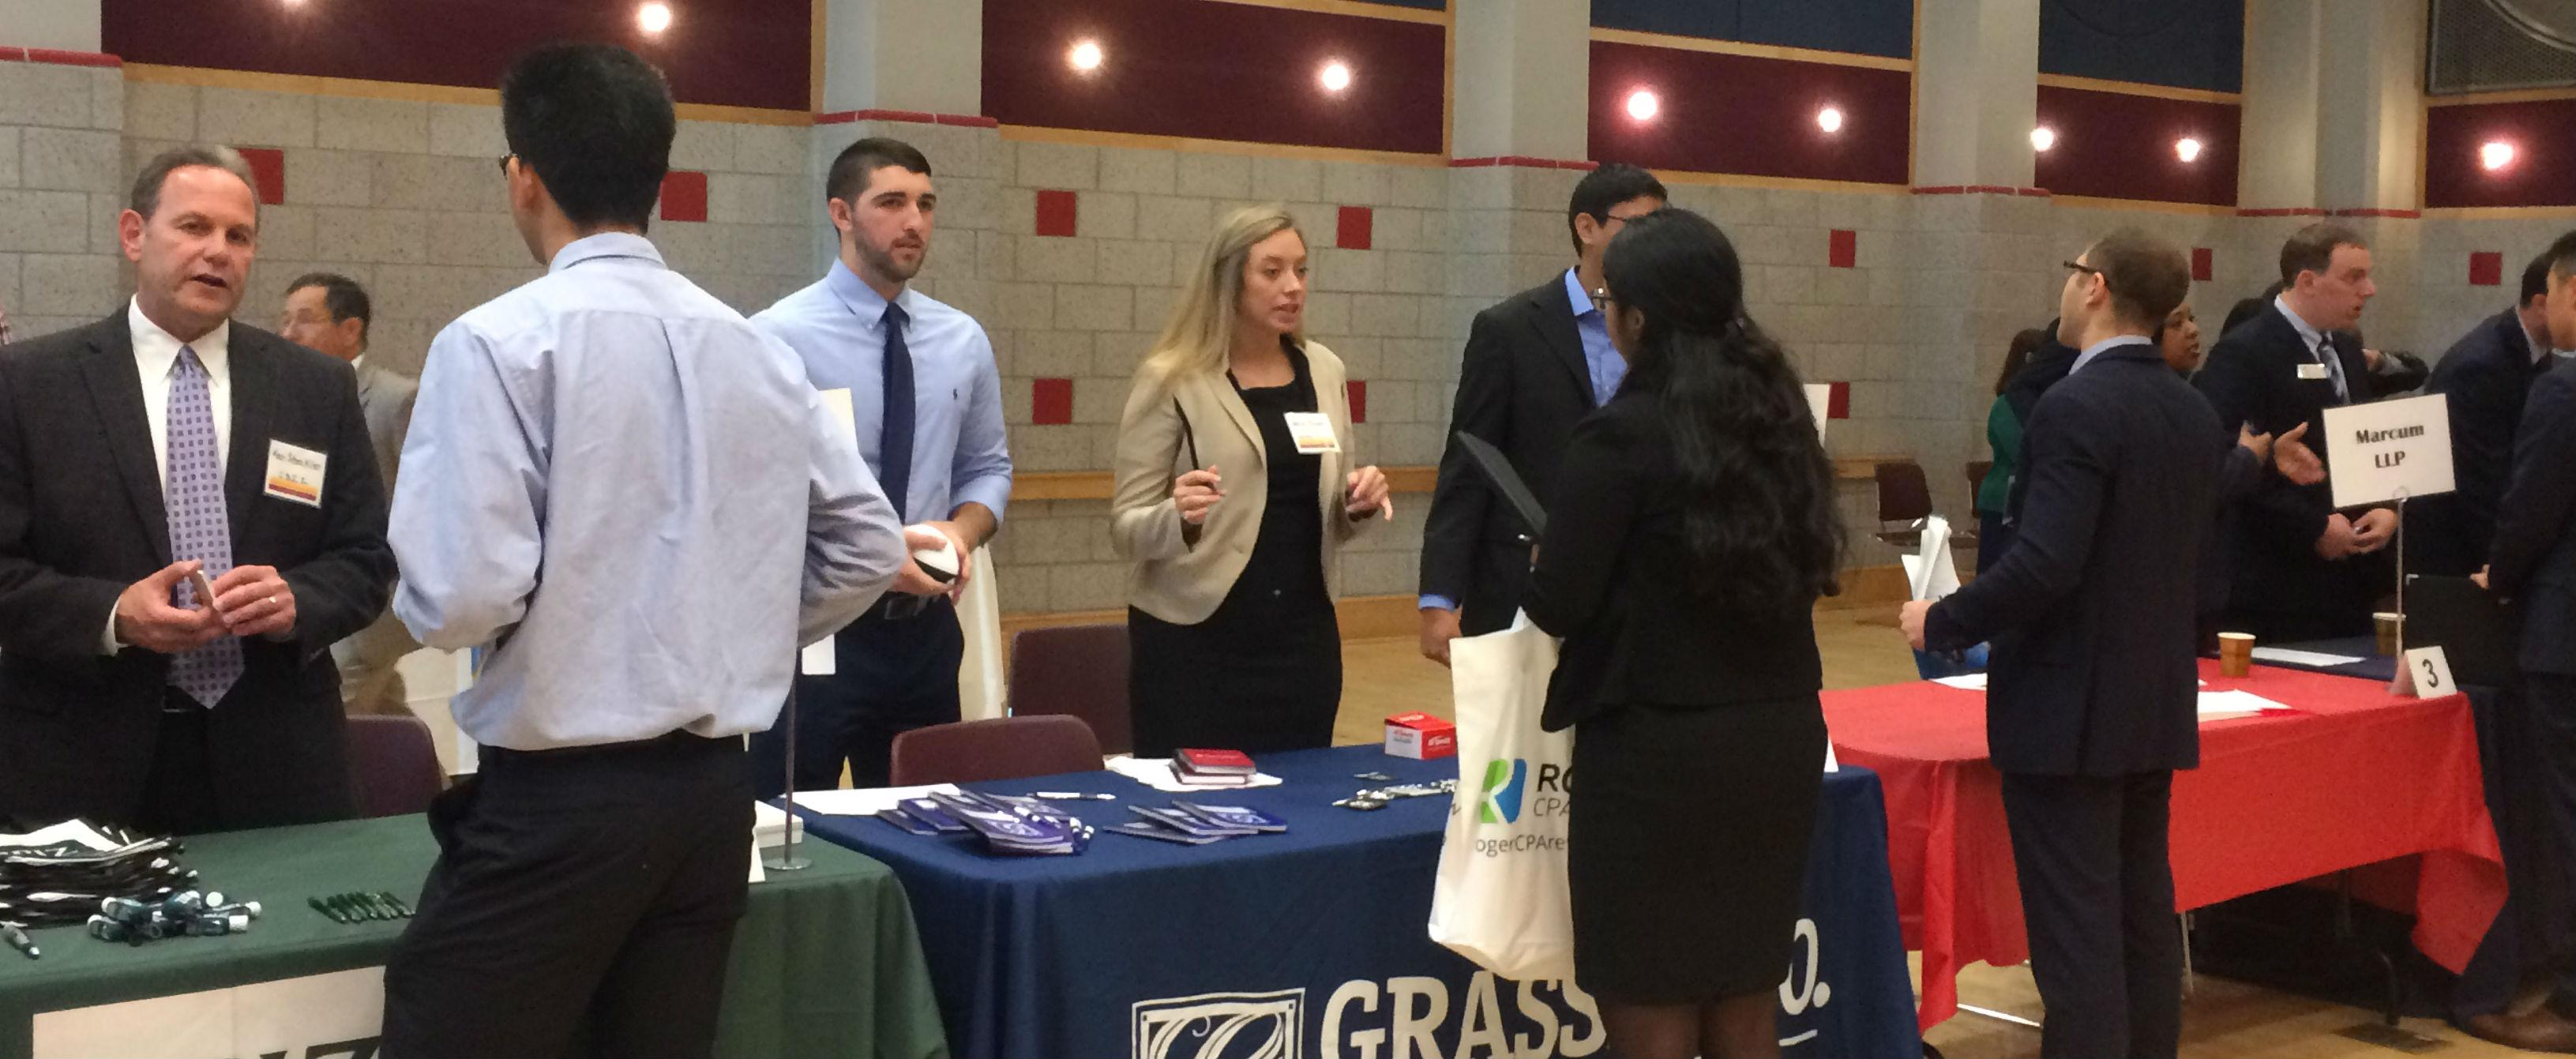 Accounting Students Make Connections with Firms at Annual Event